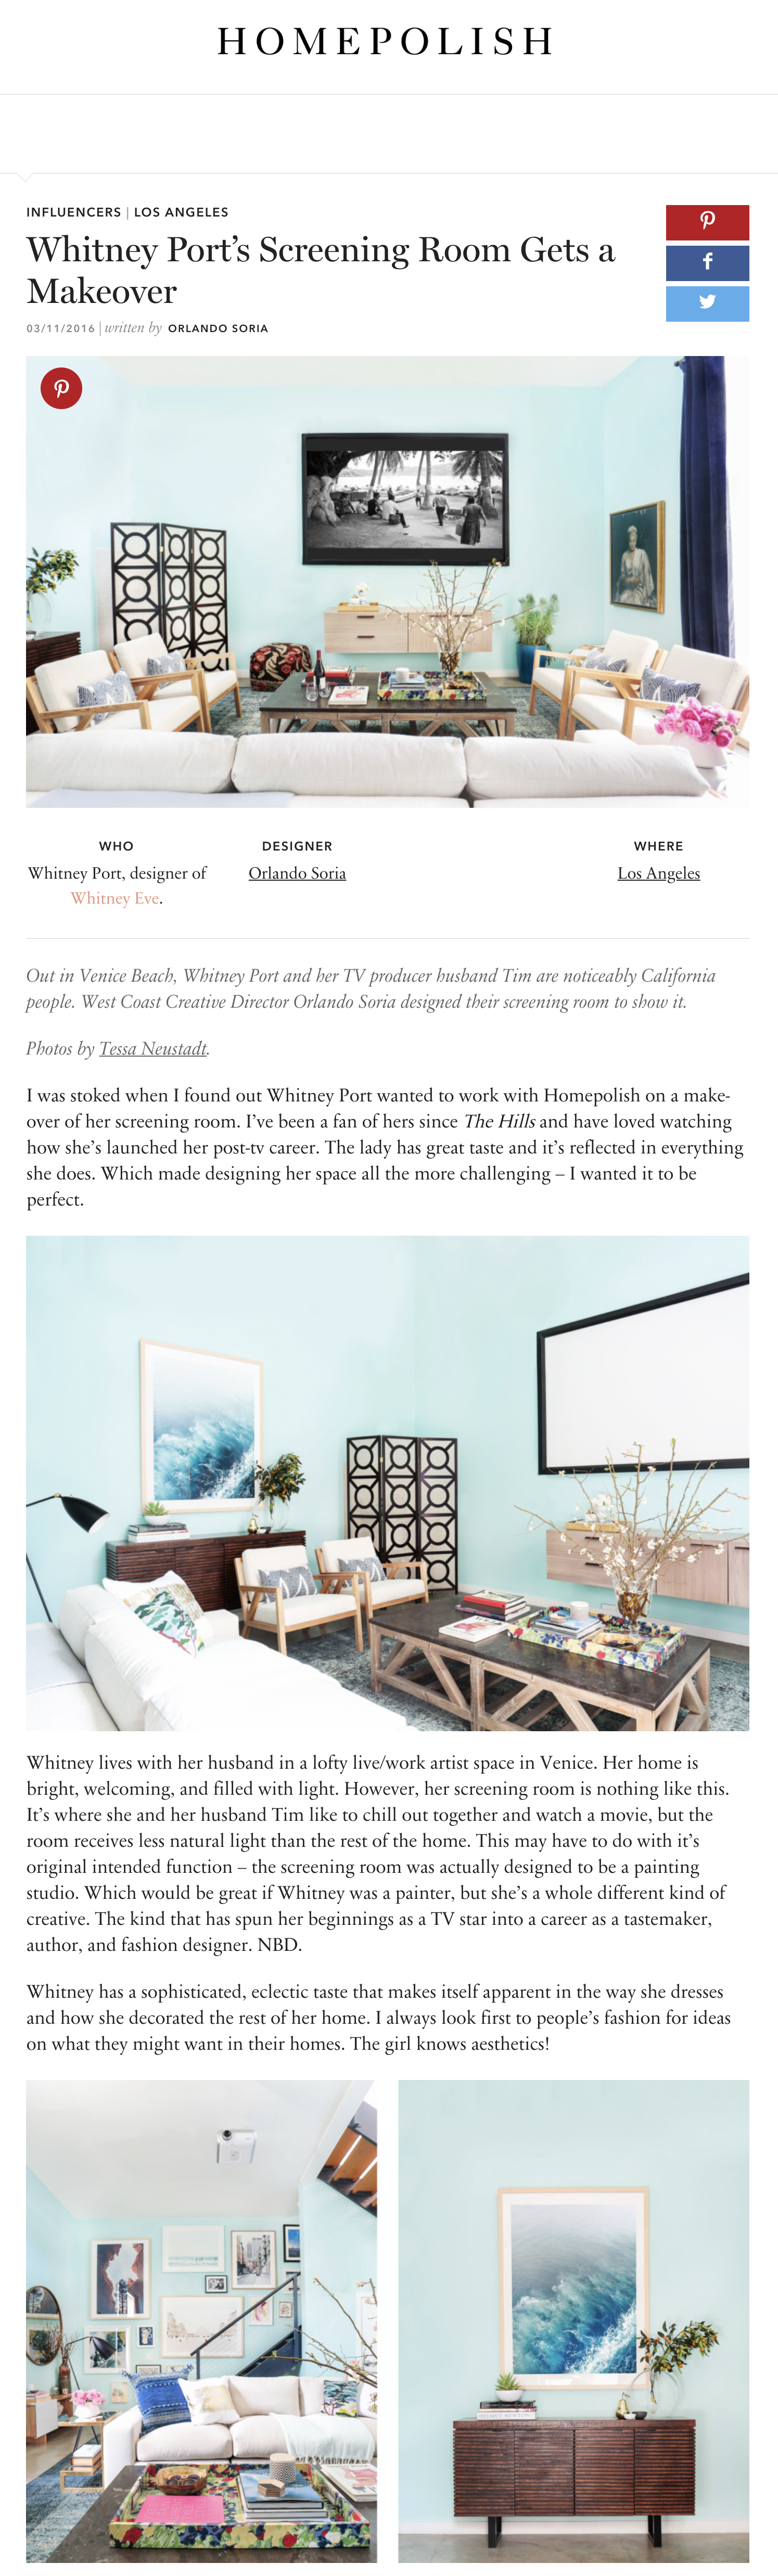 screencapture-homepolish-mag-whitney-ports-screening-room-gets-a-makeover-2019-01-08-12_21_00 copy.png